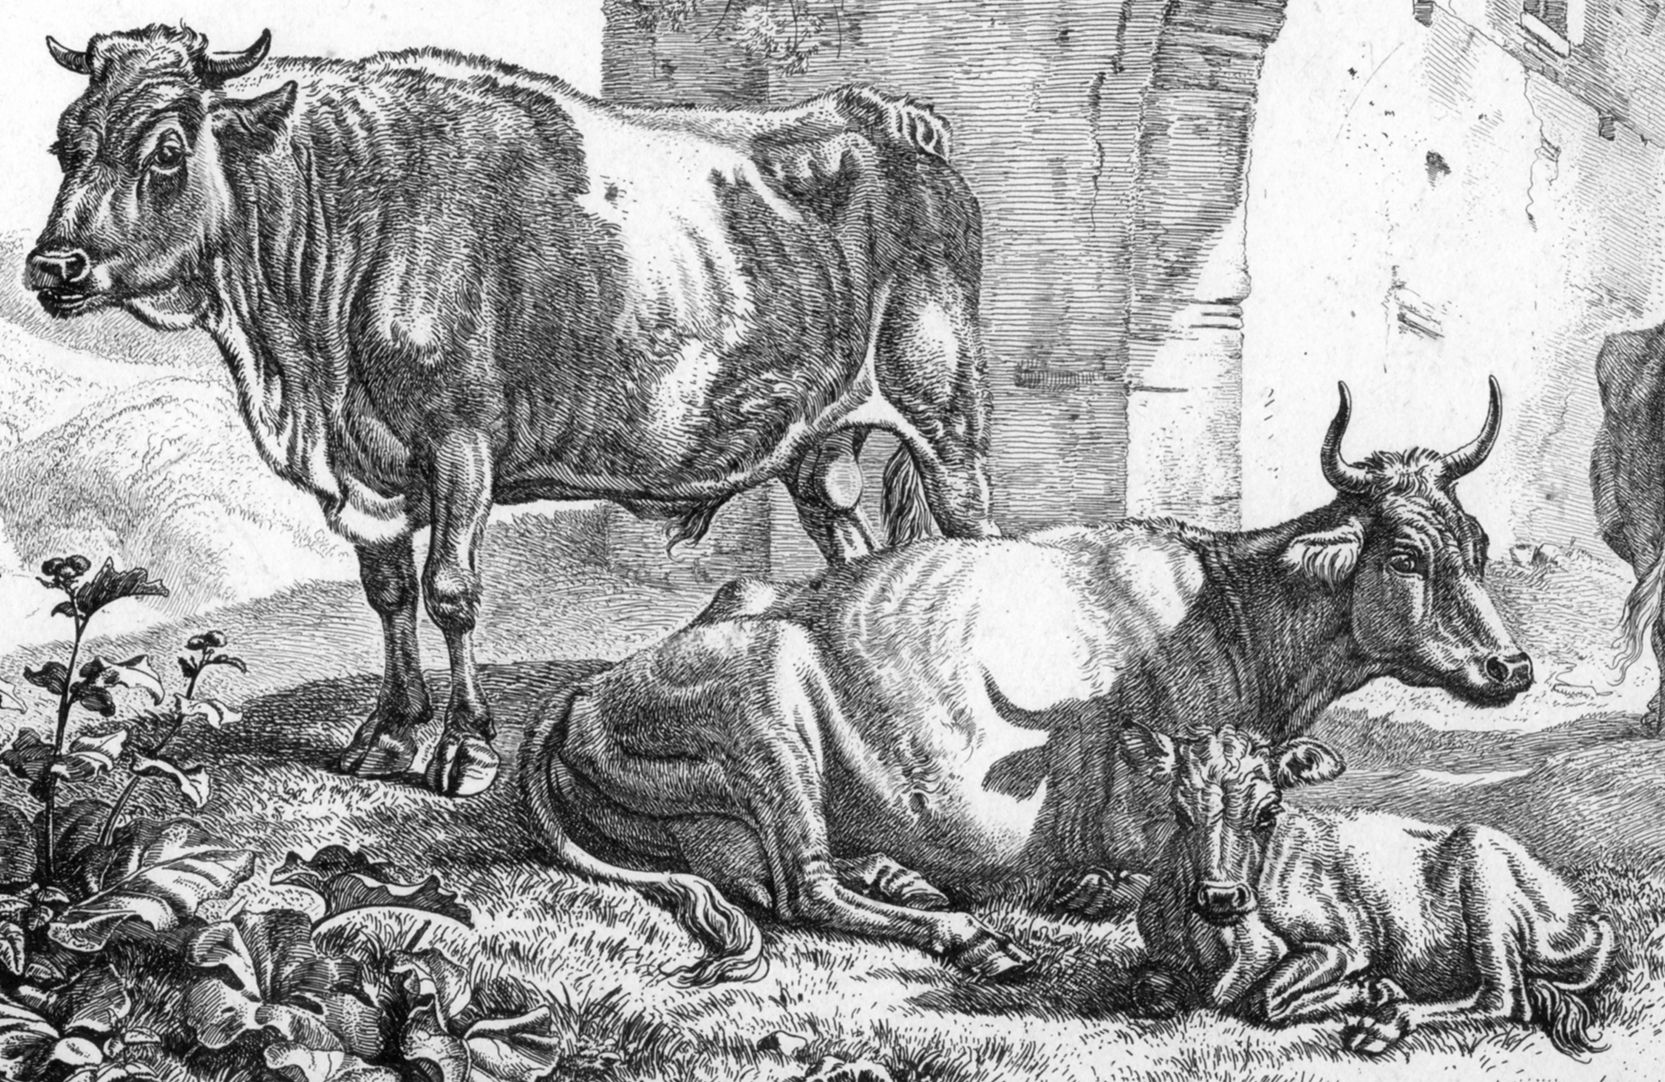 Cattle near ruins Central section of the picture